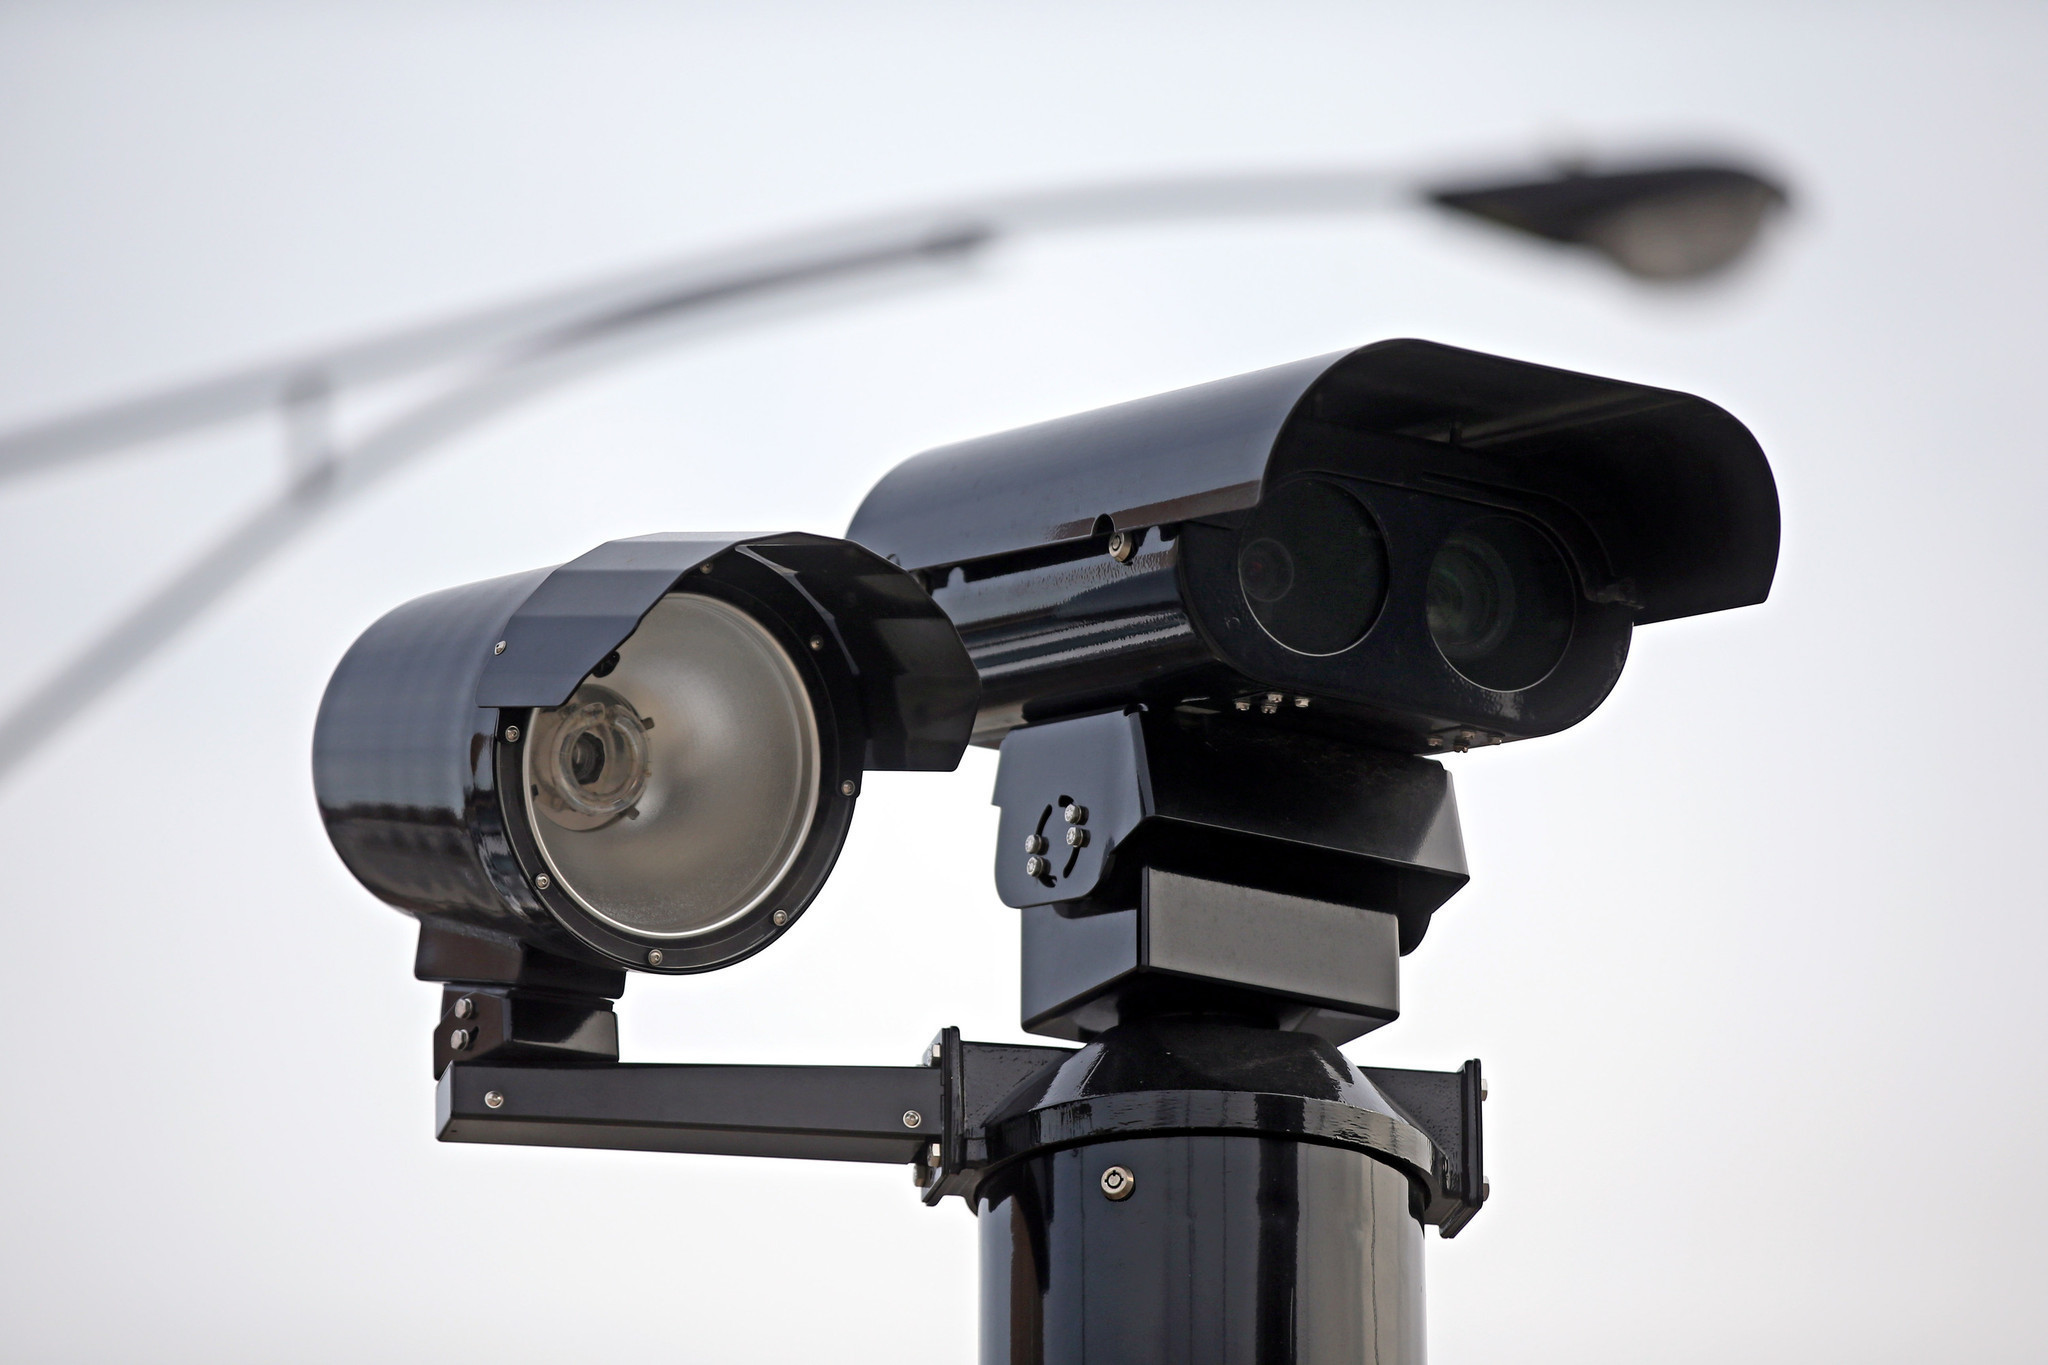 Emanuel administration clears bribe-paying red light camera vendor ...